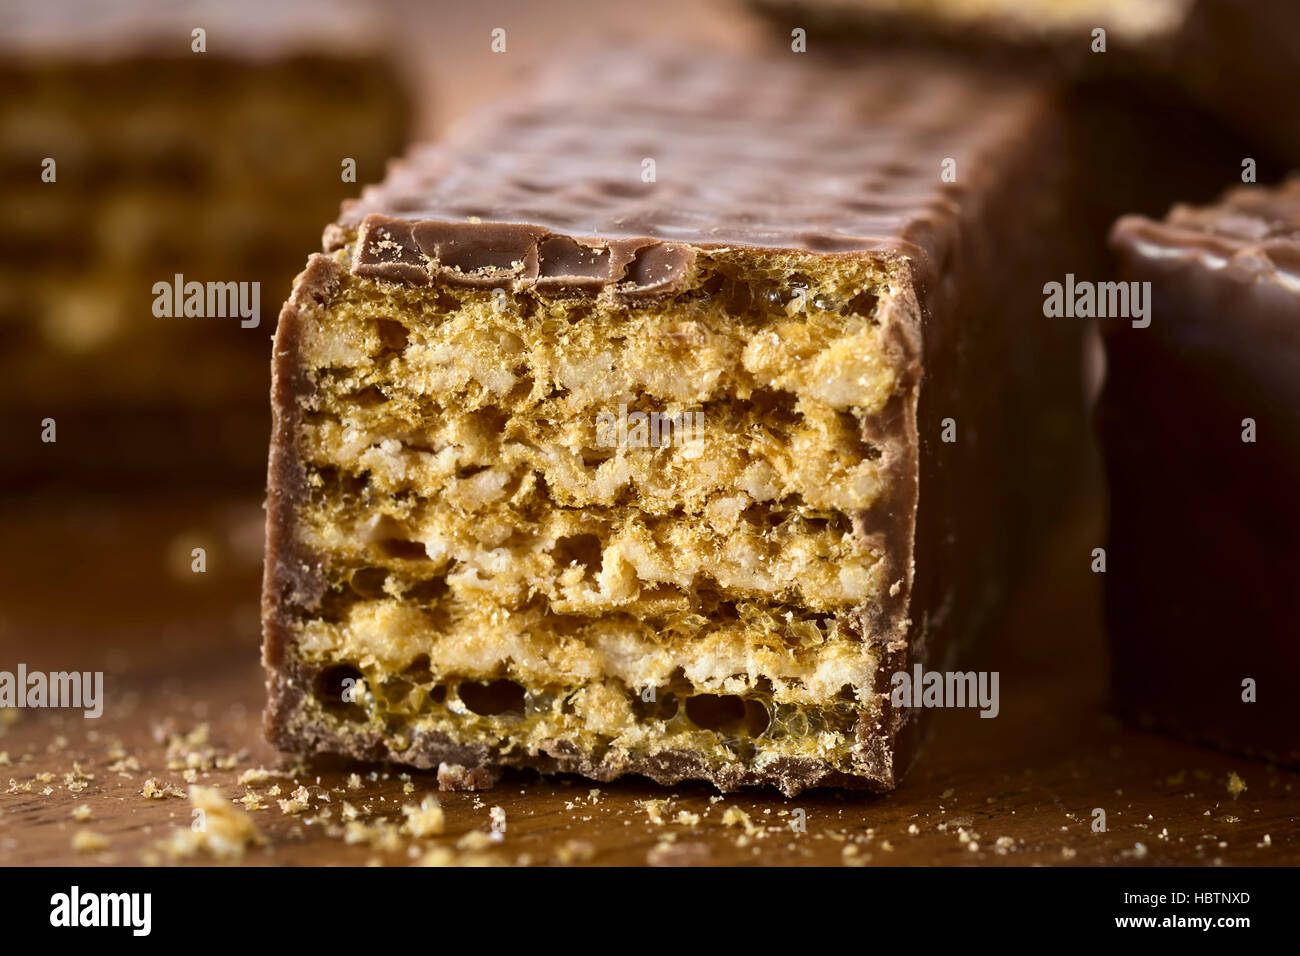 Chocolate covered wafer bar cross section closeup, photographed with natural light (Very Shallow Depth of Field) - Stock Image